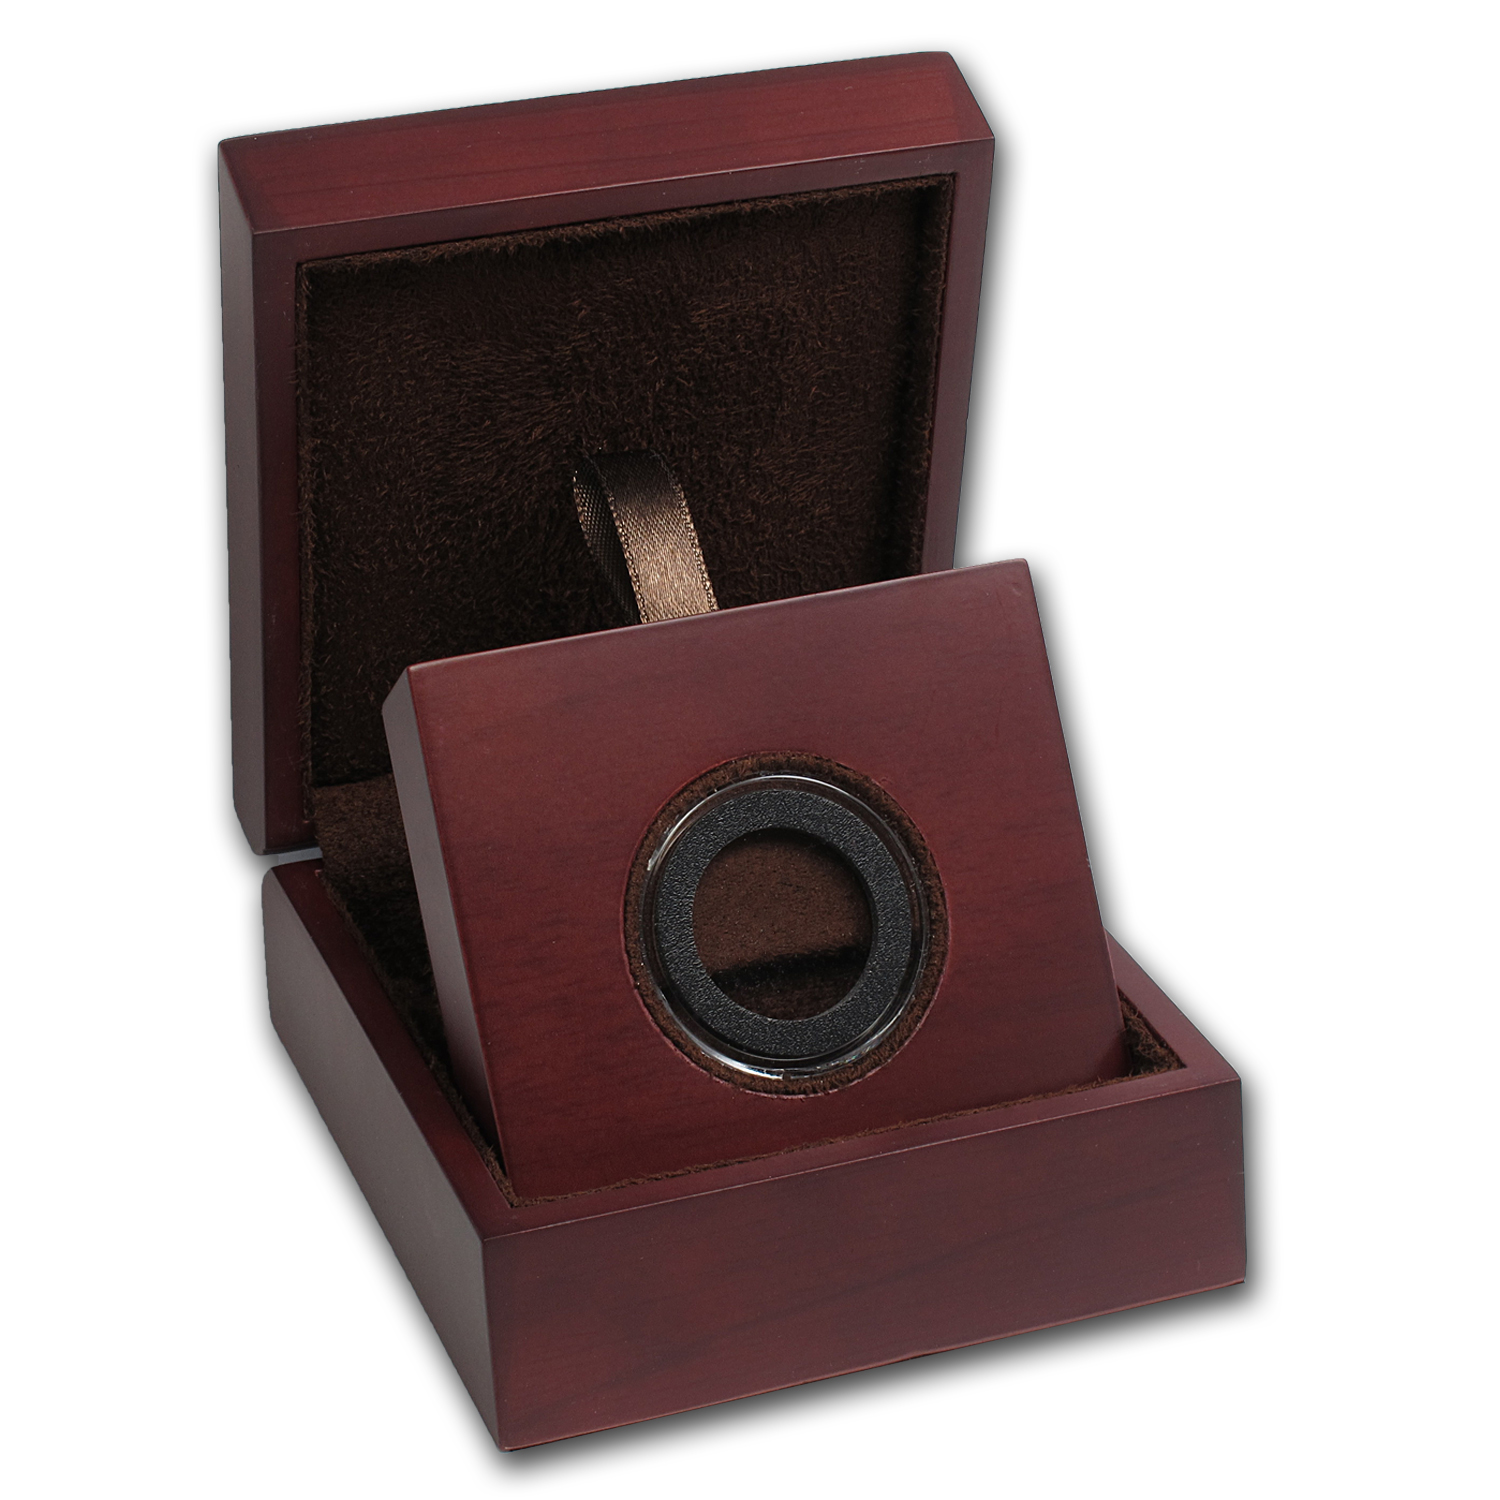 APMEX Wood Gift Box - Includes 23 mm Air-Tite Holder with Gasket